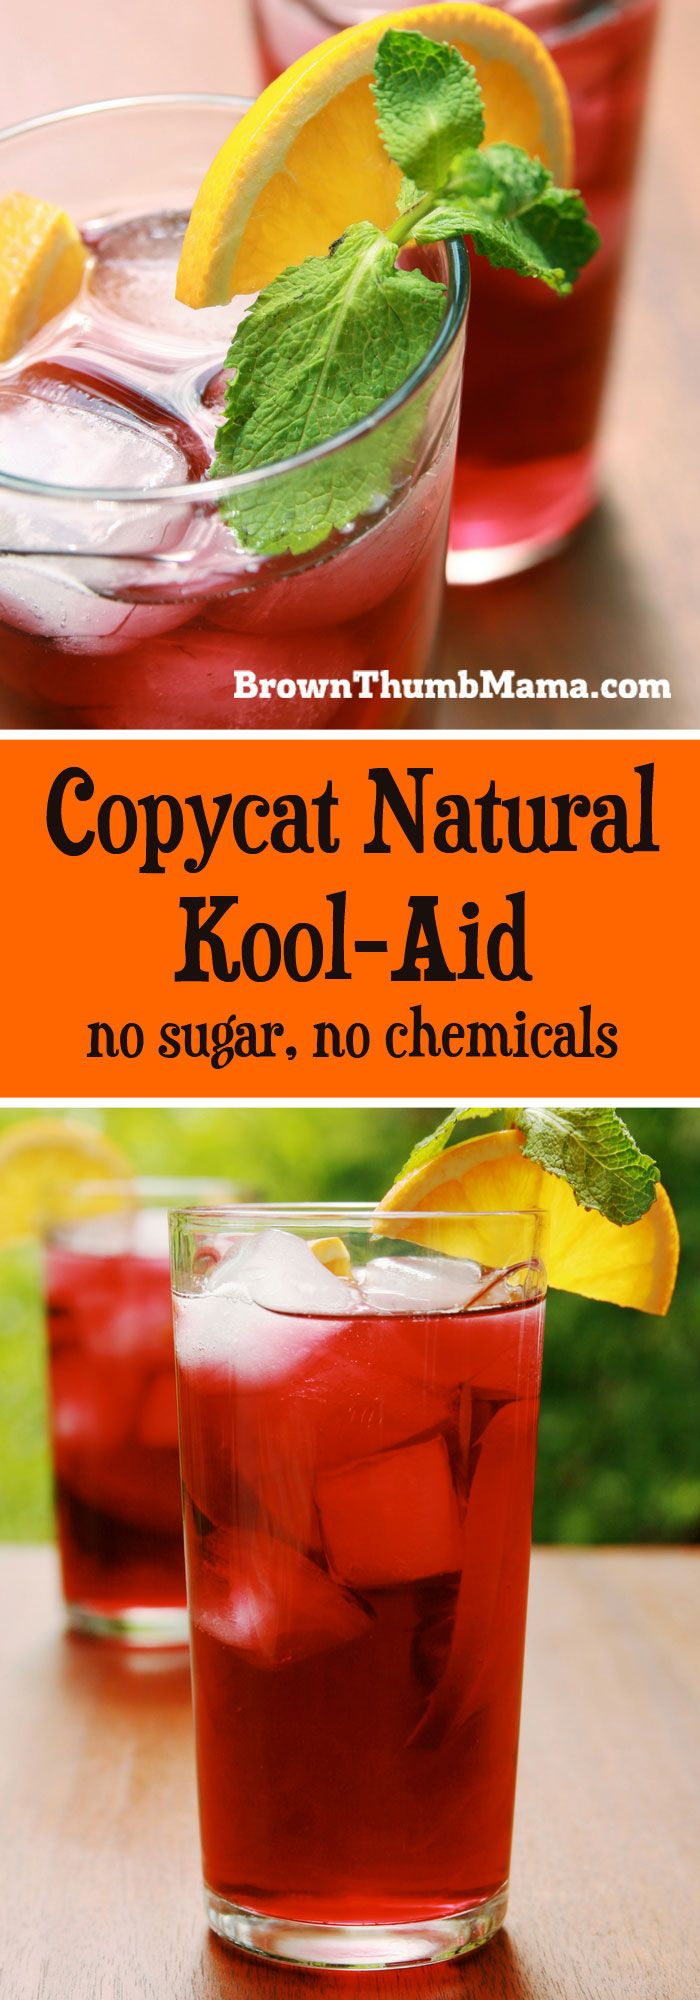 My kids love this copycat natural Kool-Aid! It's easy to make in several delicious, fruity flavors, and is sweetened with honey, not sugar.